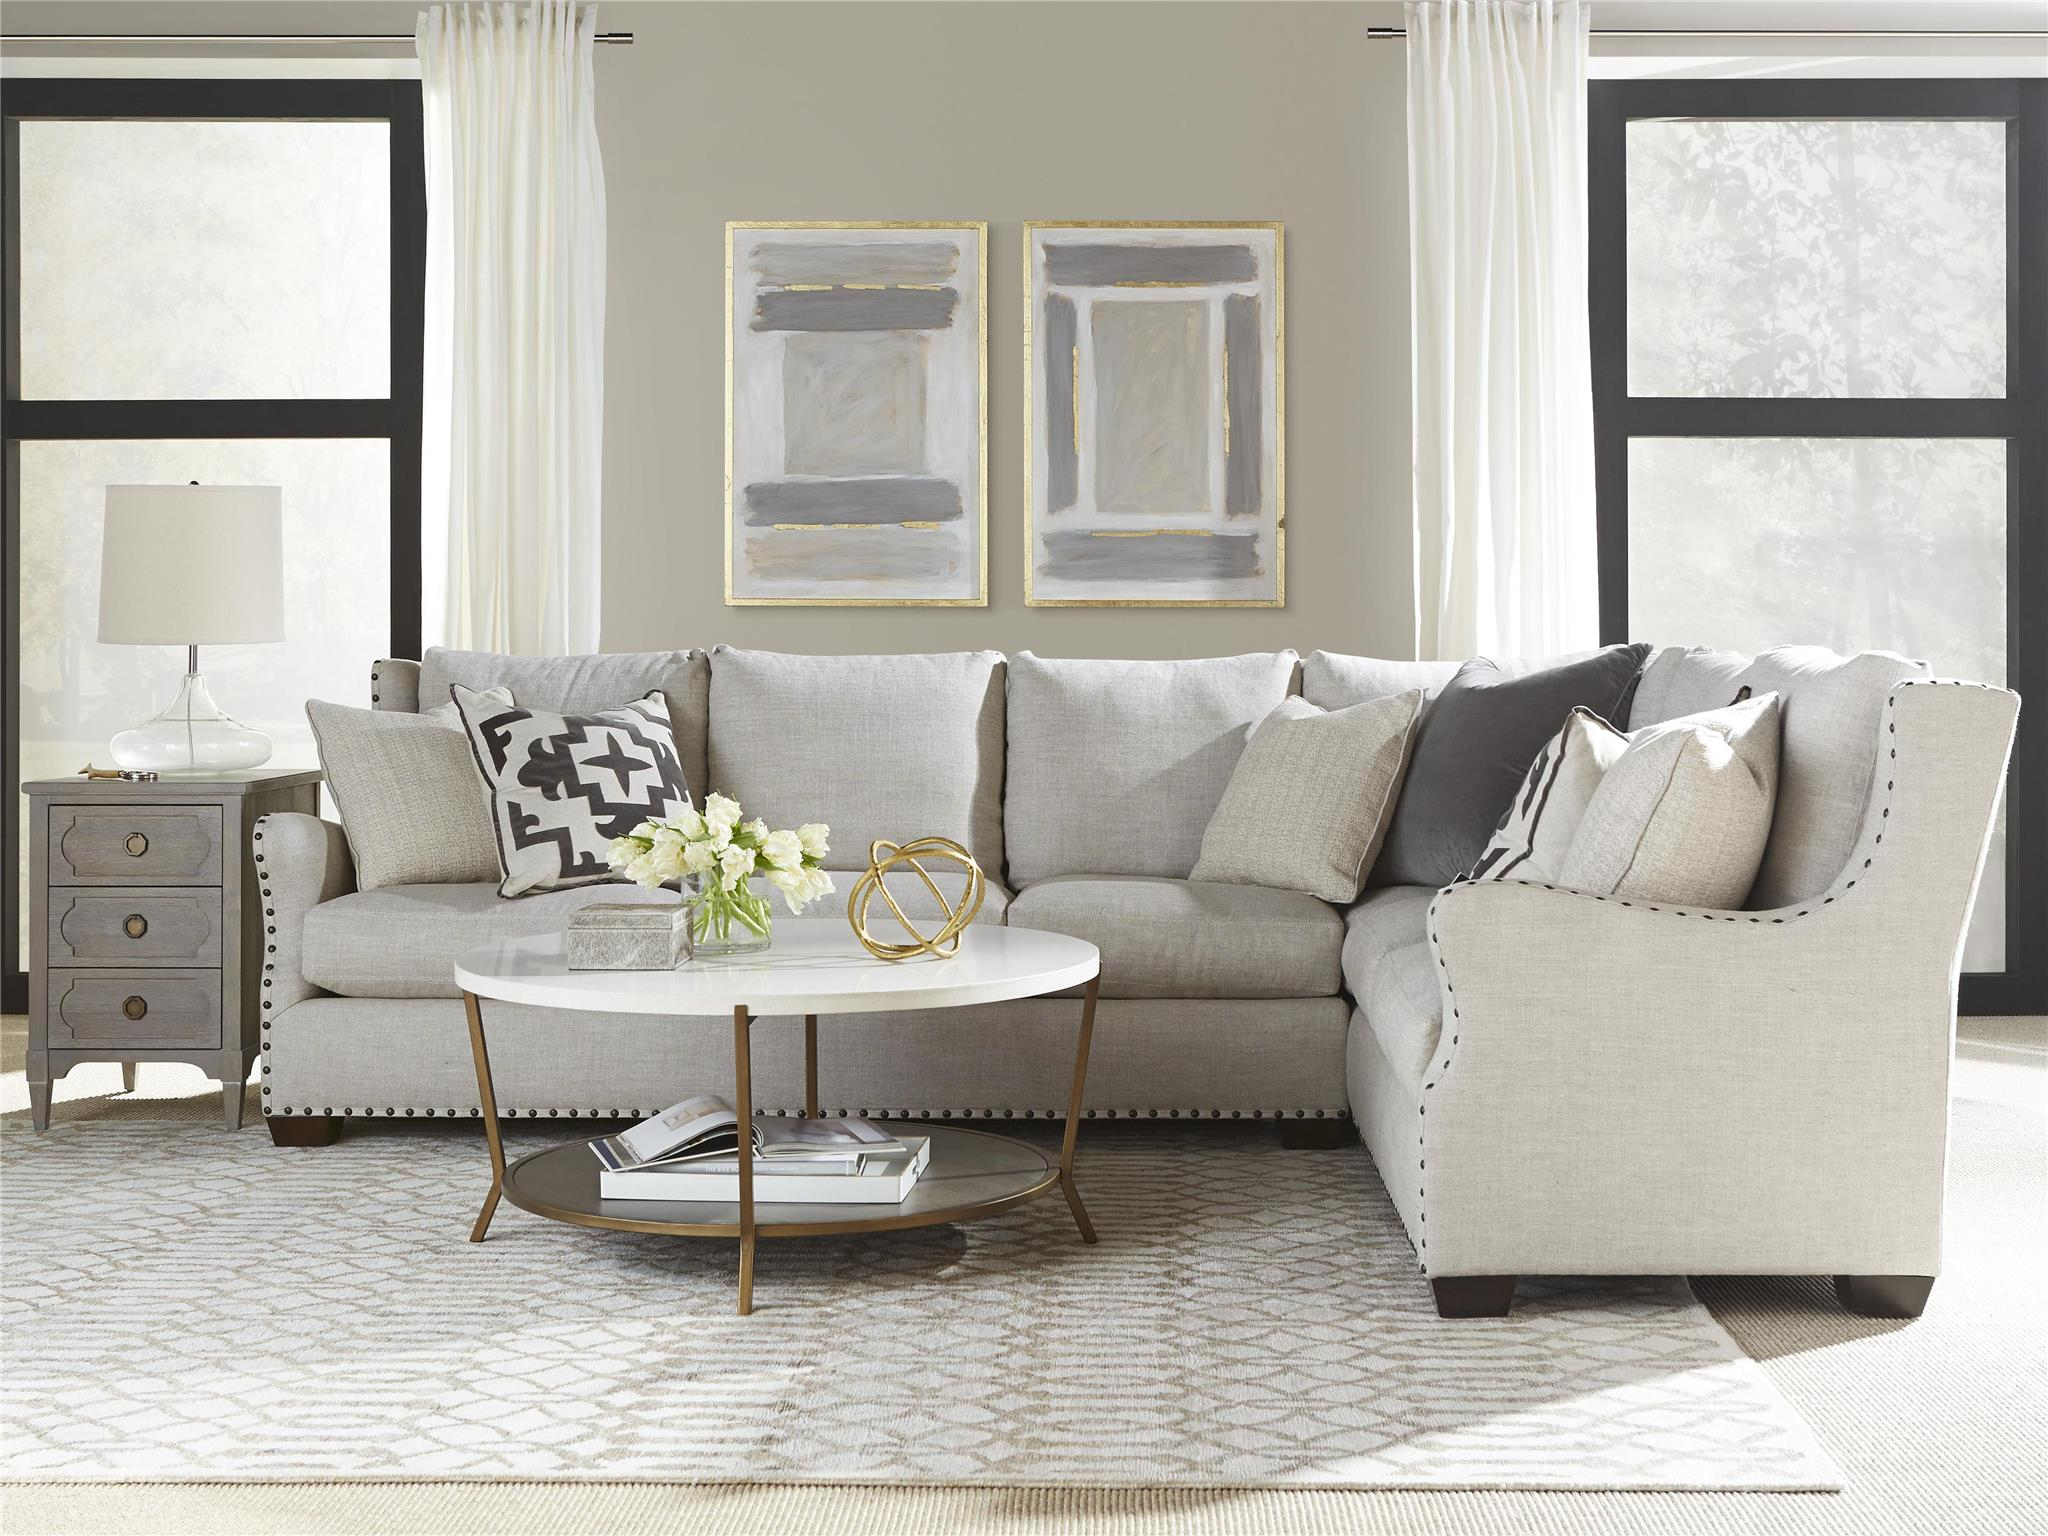 Universal furniture curated connor sectional left arm sofa right arm corner for Modern living room furniture houston tx